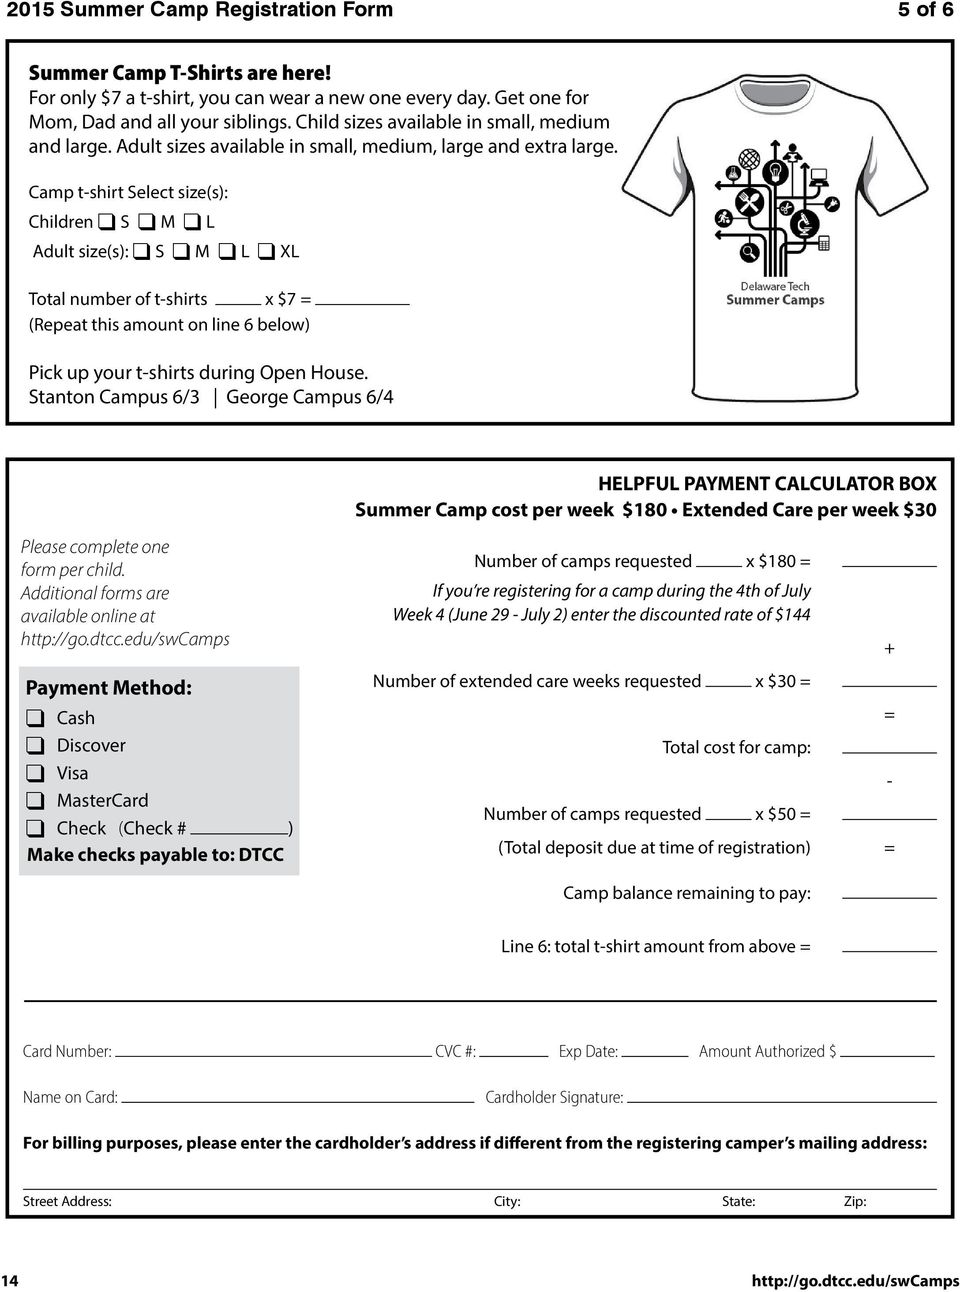 Camp t-shirt Select size(s): Children q S q M q L Adult size(s): q S q M q L q XL Total number of t-shirts x $7 = (Repeat this amount on line 6 below) Pick up your t-shirts during Open House.